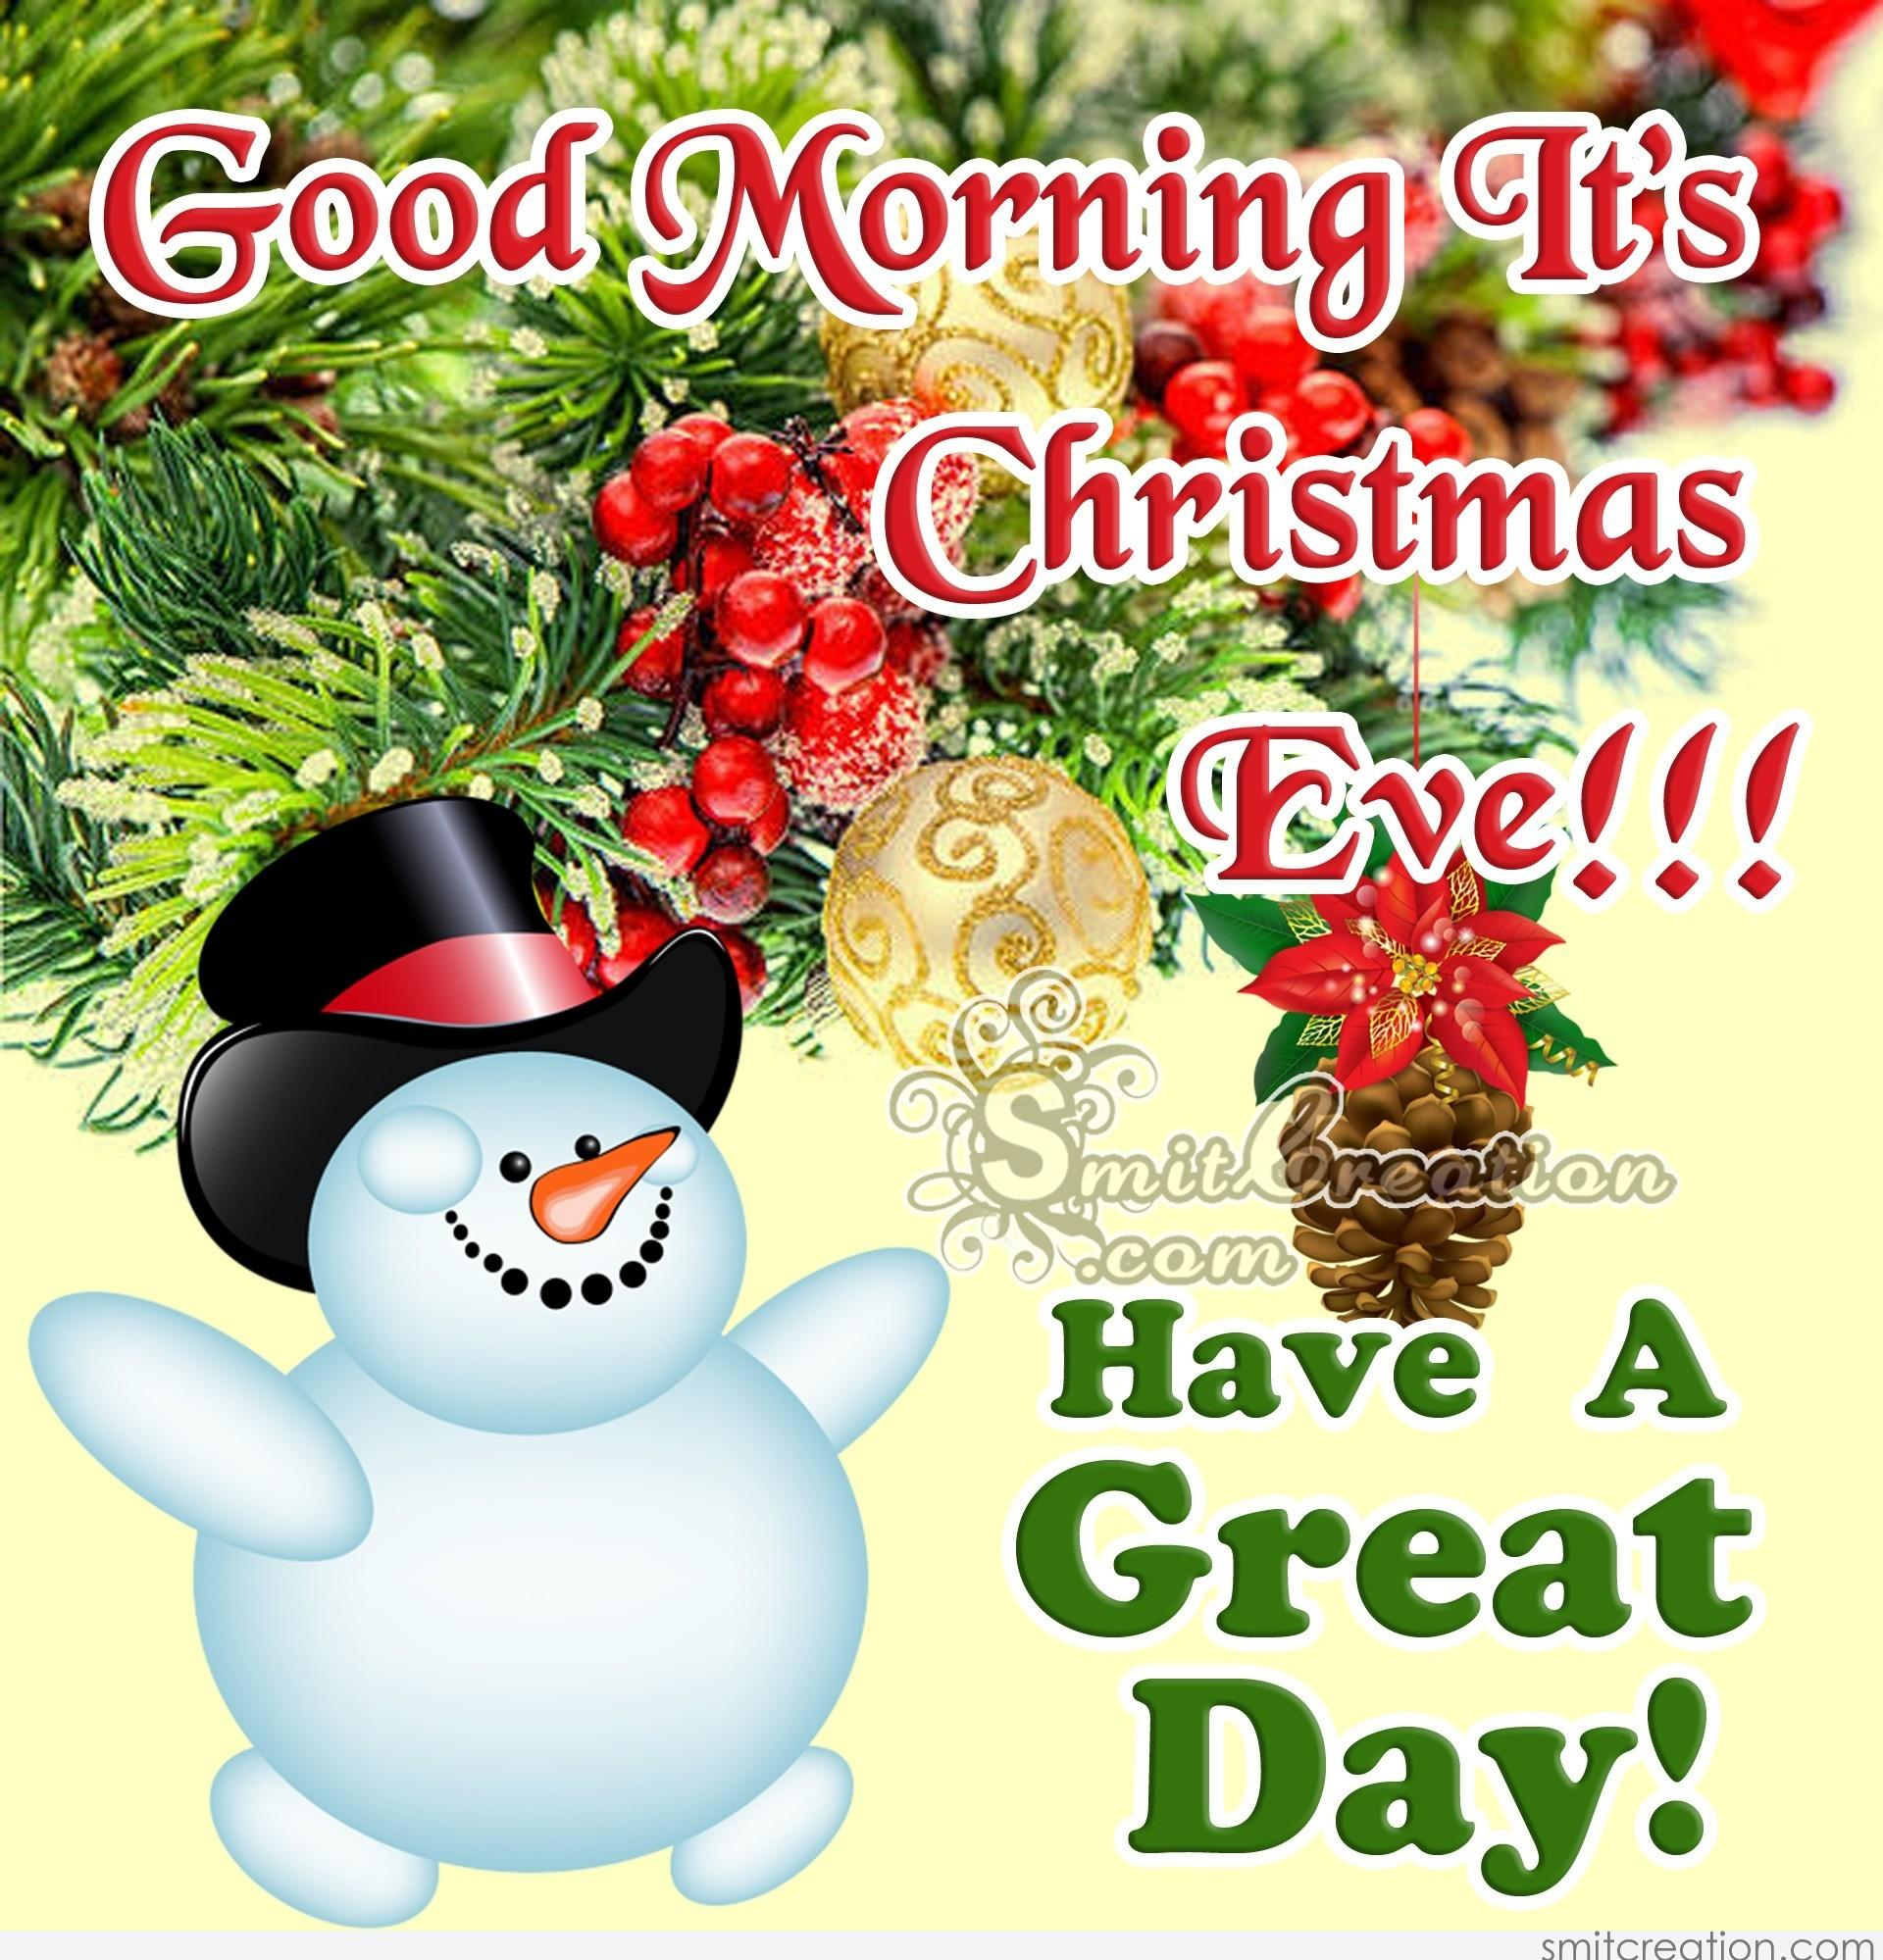 Good Morning It's Christmas Eve!!! Have A Great Day! - SmitCreation.com